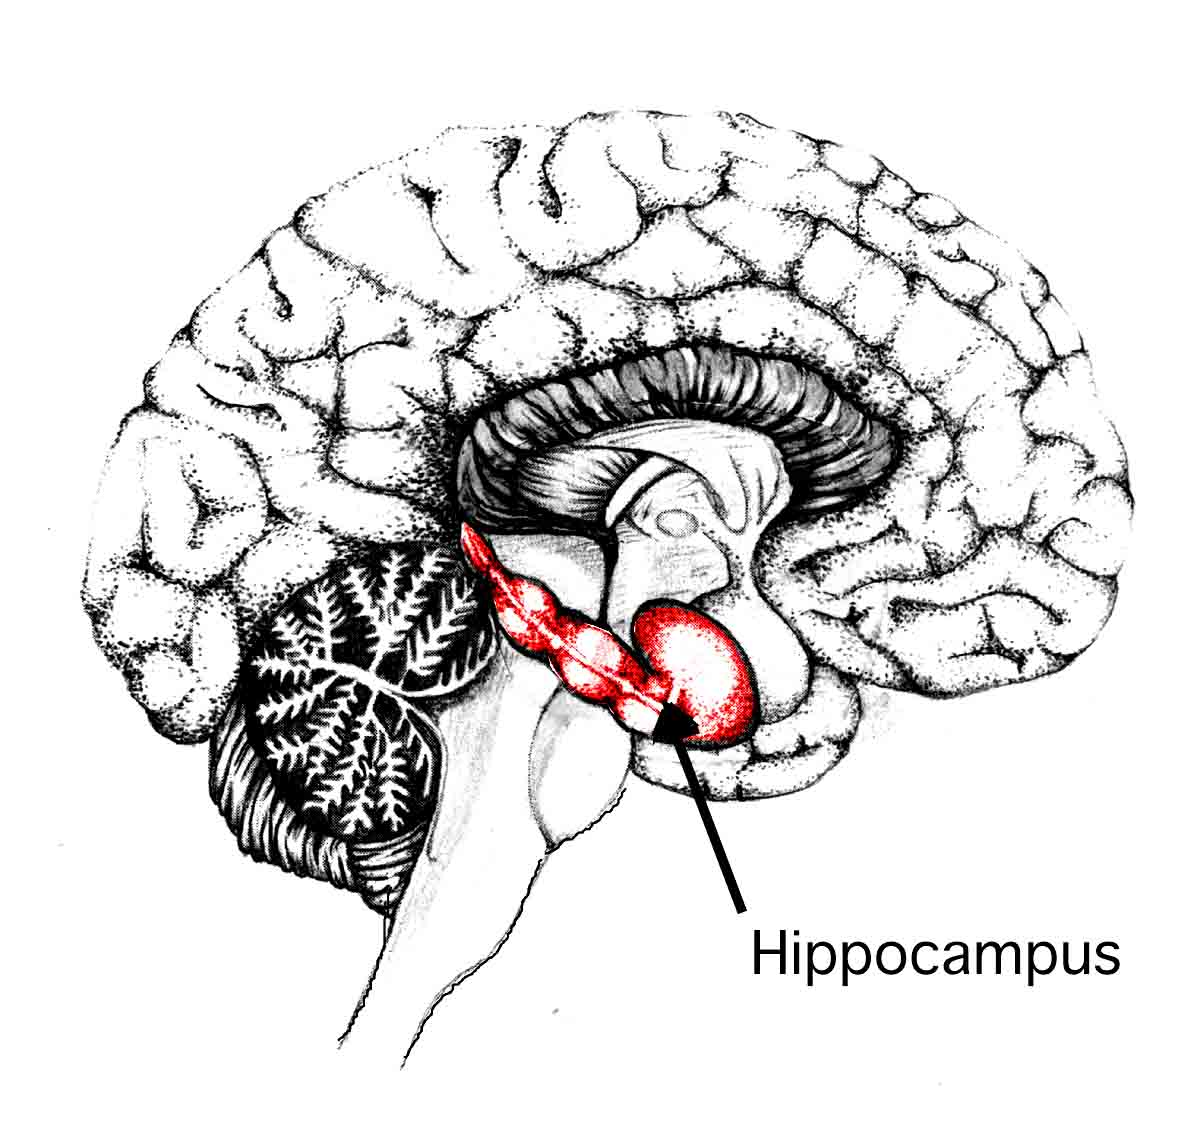 Diet and nutrition affect hippocampus size and mental health.